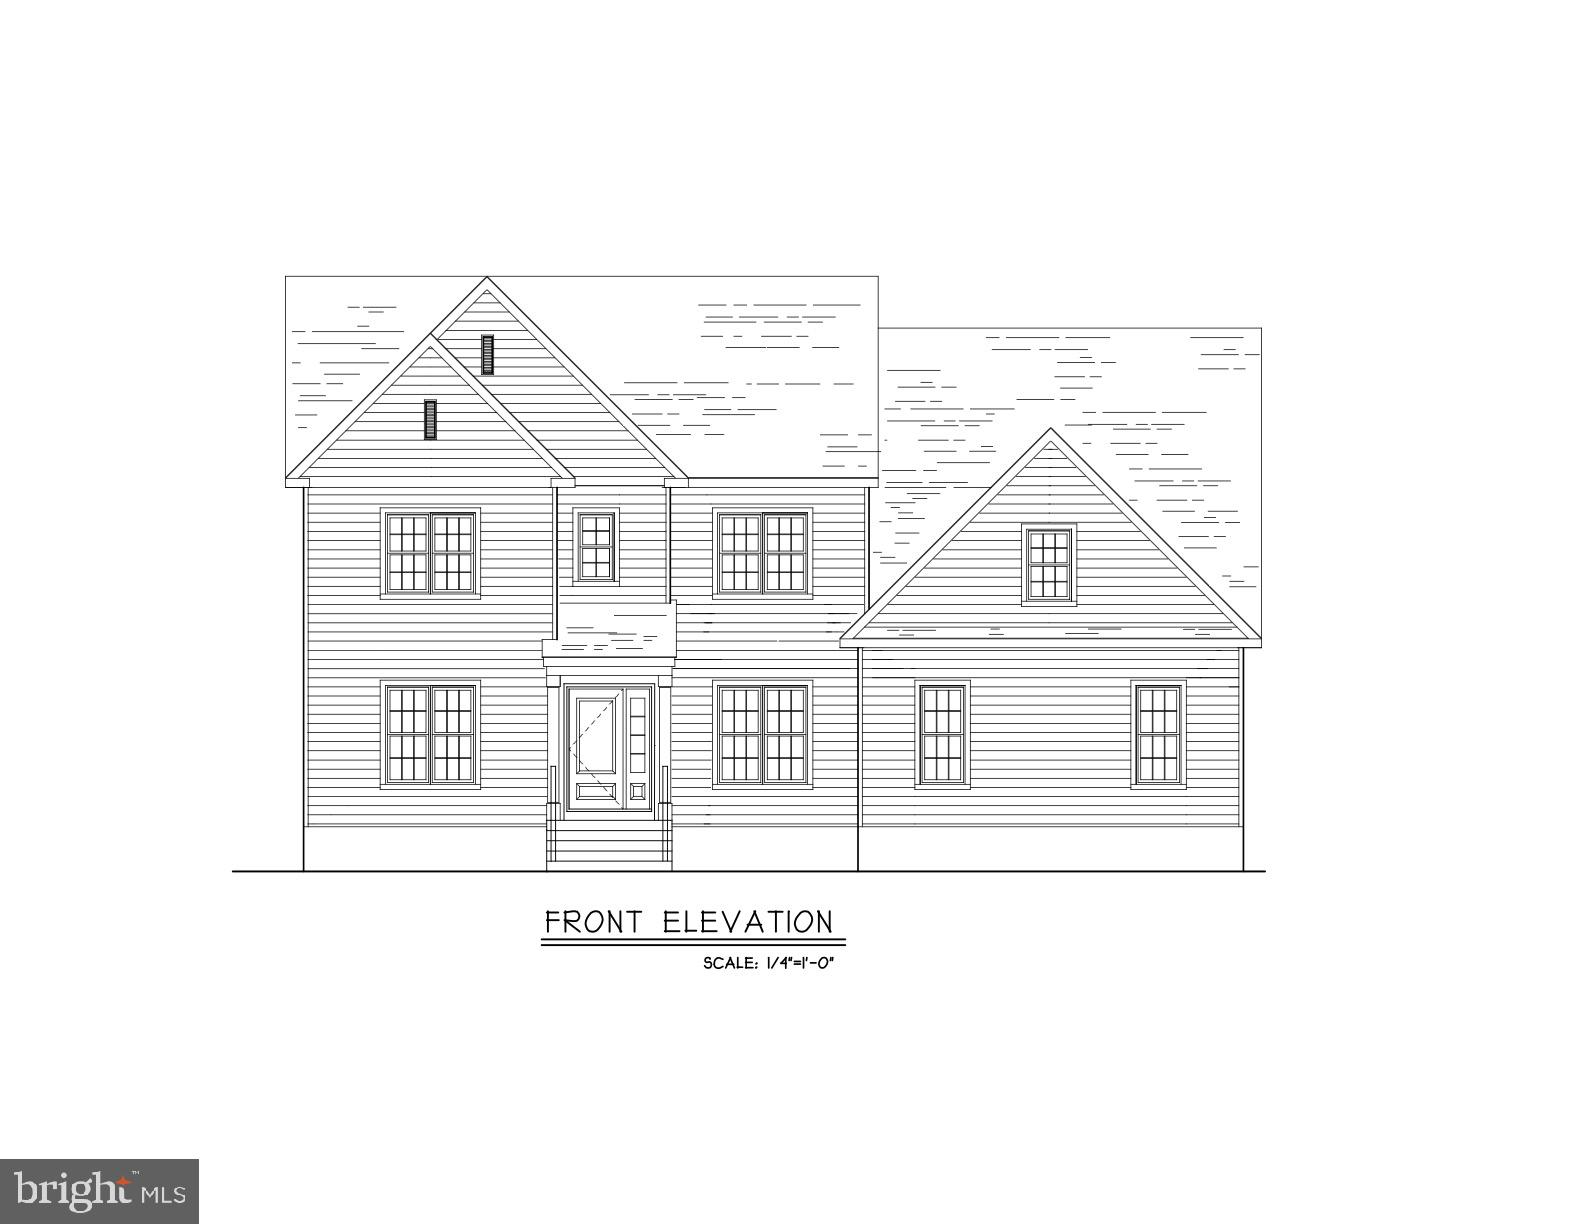 Another beautiful TO BE BUILT home by custom home builder, North Point Builders.  This almost 3000 square foot new construction home will offer 4 bedrooms and 3 full bathrooms.  One full bath is on the main level right off the study, which can be converted into a 5th bedroom.  This is a great option for an in-law suite.  Features of the home include; foyer with tray ceiling, gas fireplace in family room, 9 foot ceilings, 42 inch kitchen cabinets, granite countertops, full basement, hall bath has double sinks, upstairs laundry and side entry 2-car garage.  House pictured is similar home (difference may exist) built by North Point Builders.